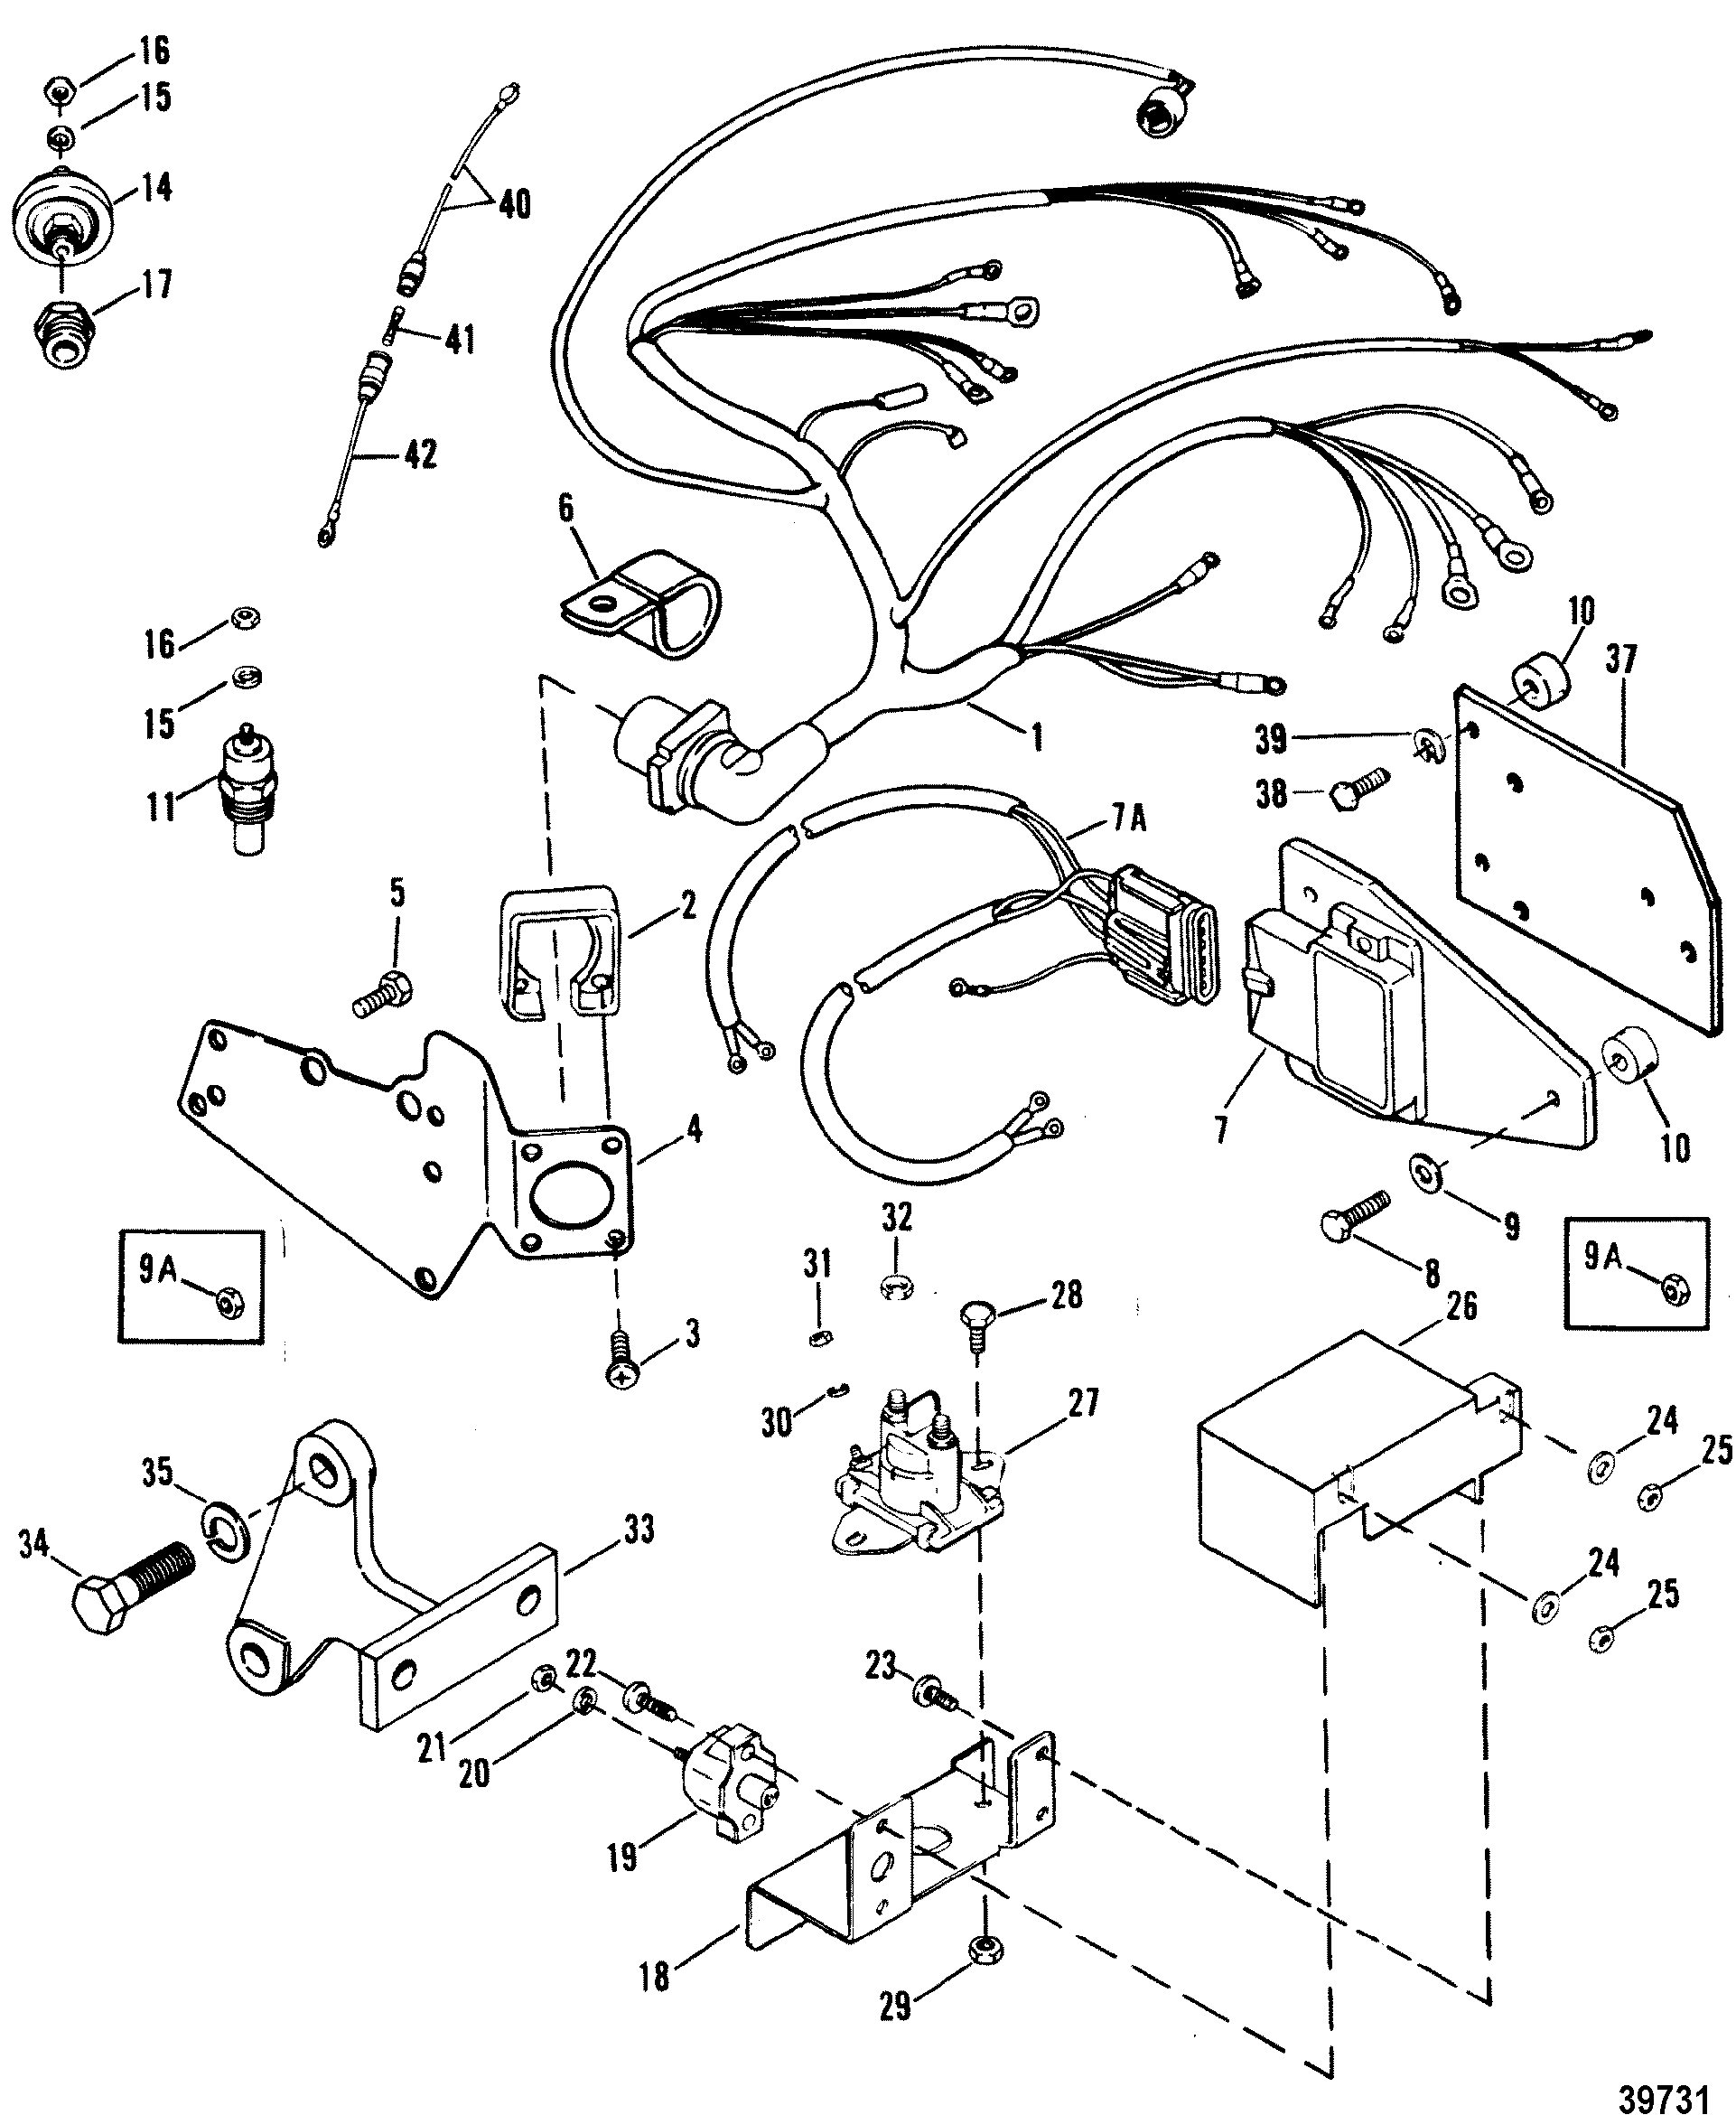 WIRING HARNESS, ELECTRICAL AND IGNITION FOR MERCRUISER 7